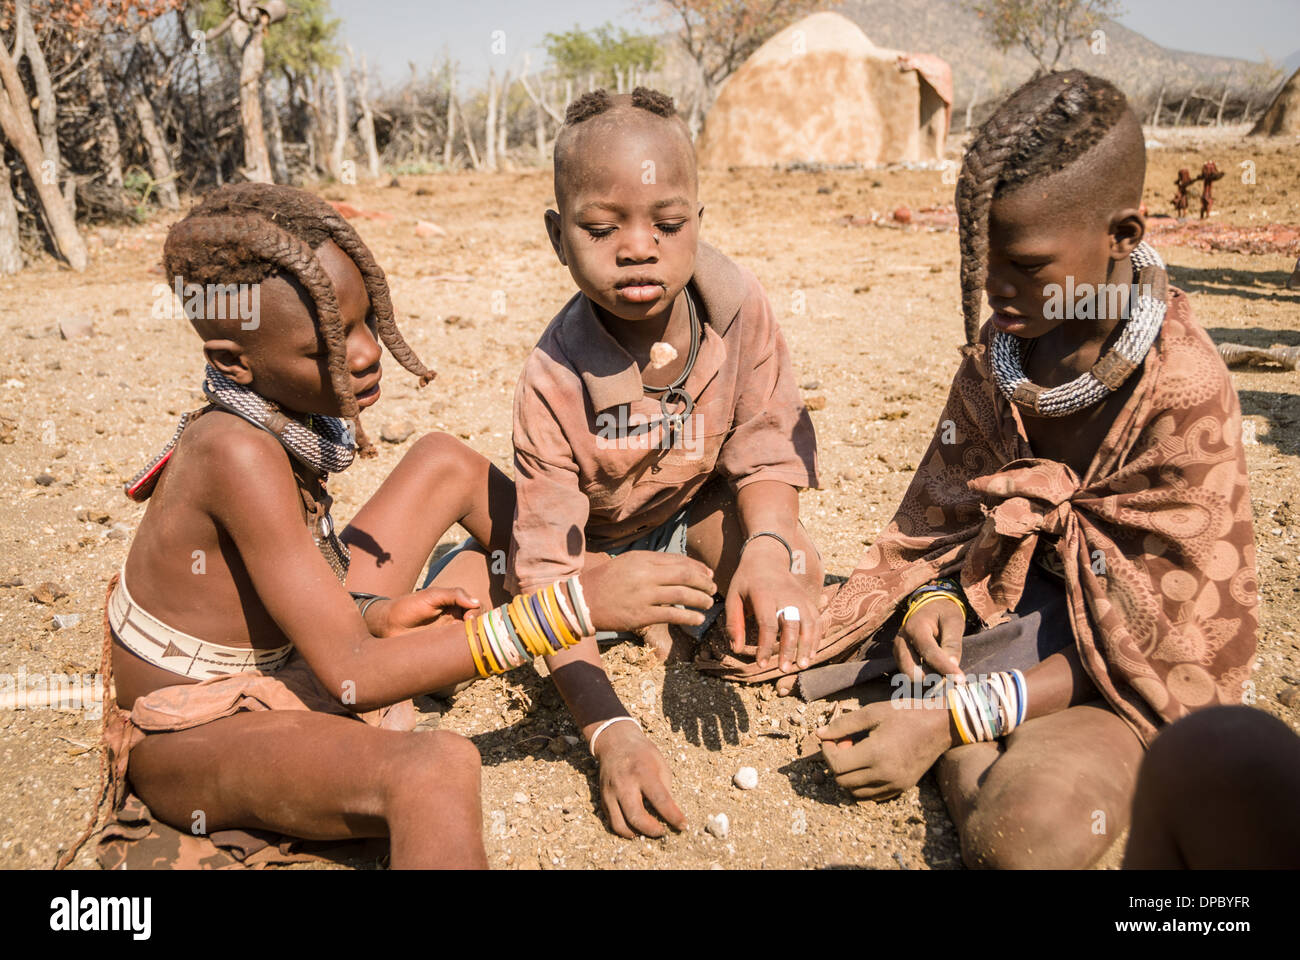 Himba children playing, village near Epupa falls, Kunene, Namibia, Africa - Stock Image